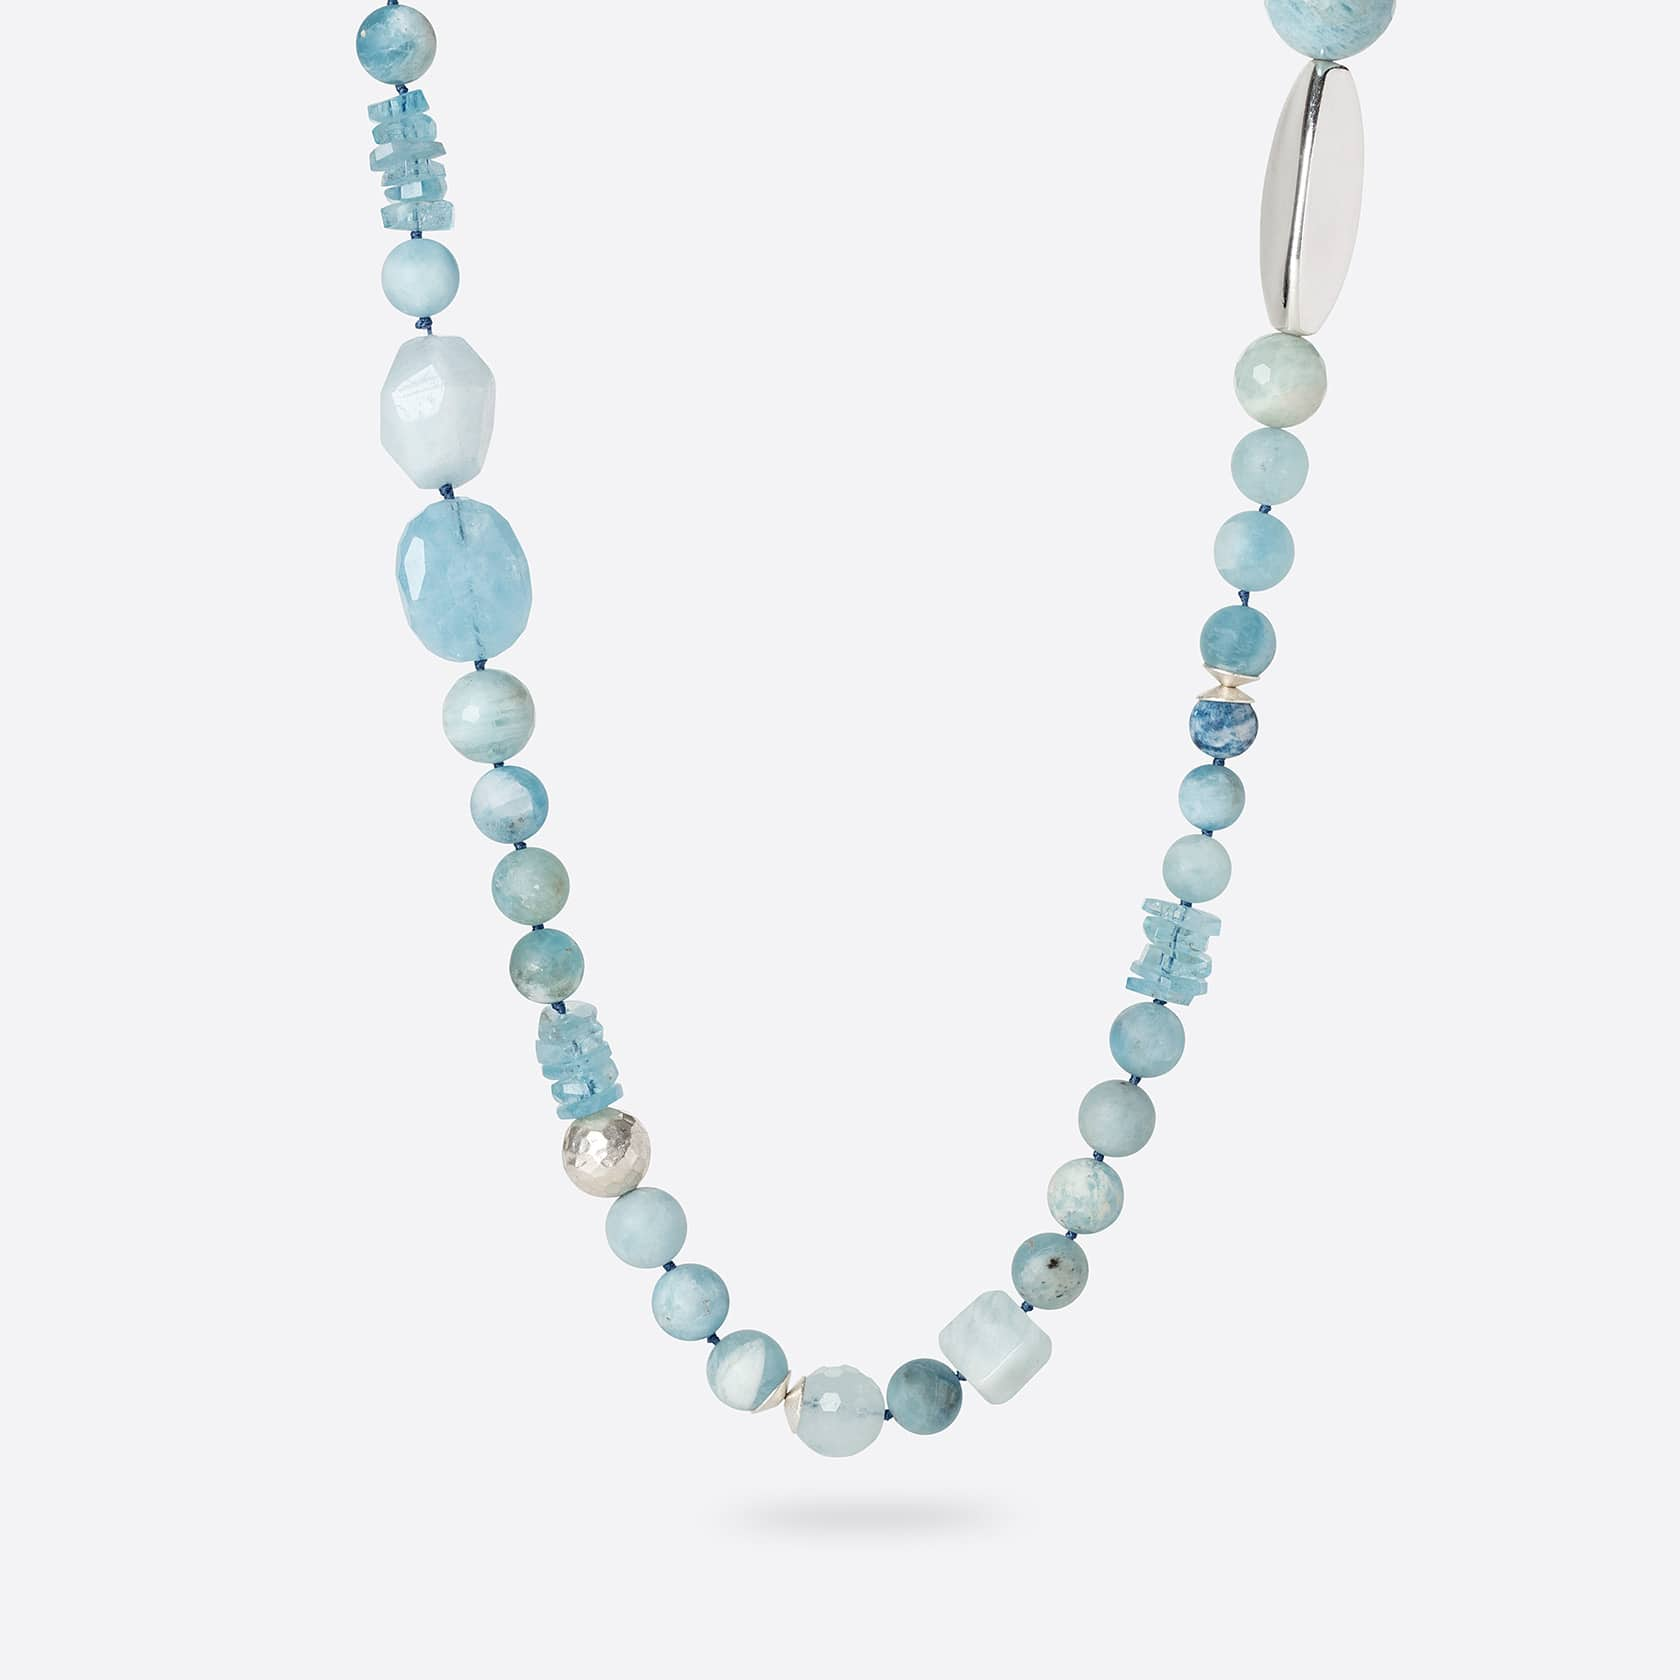 Irregular aquamarine necklace